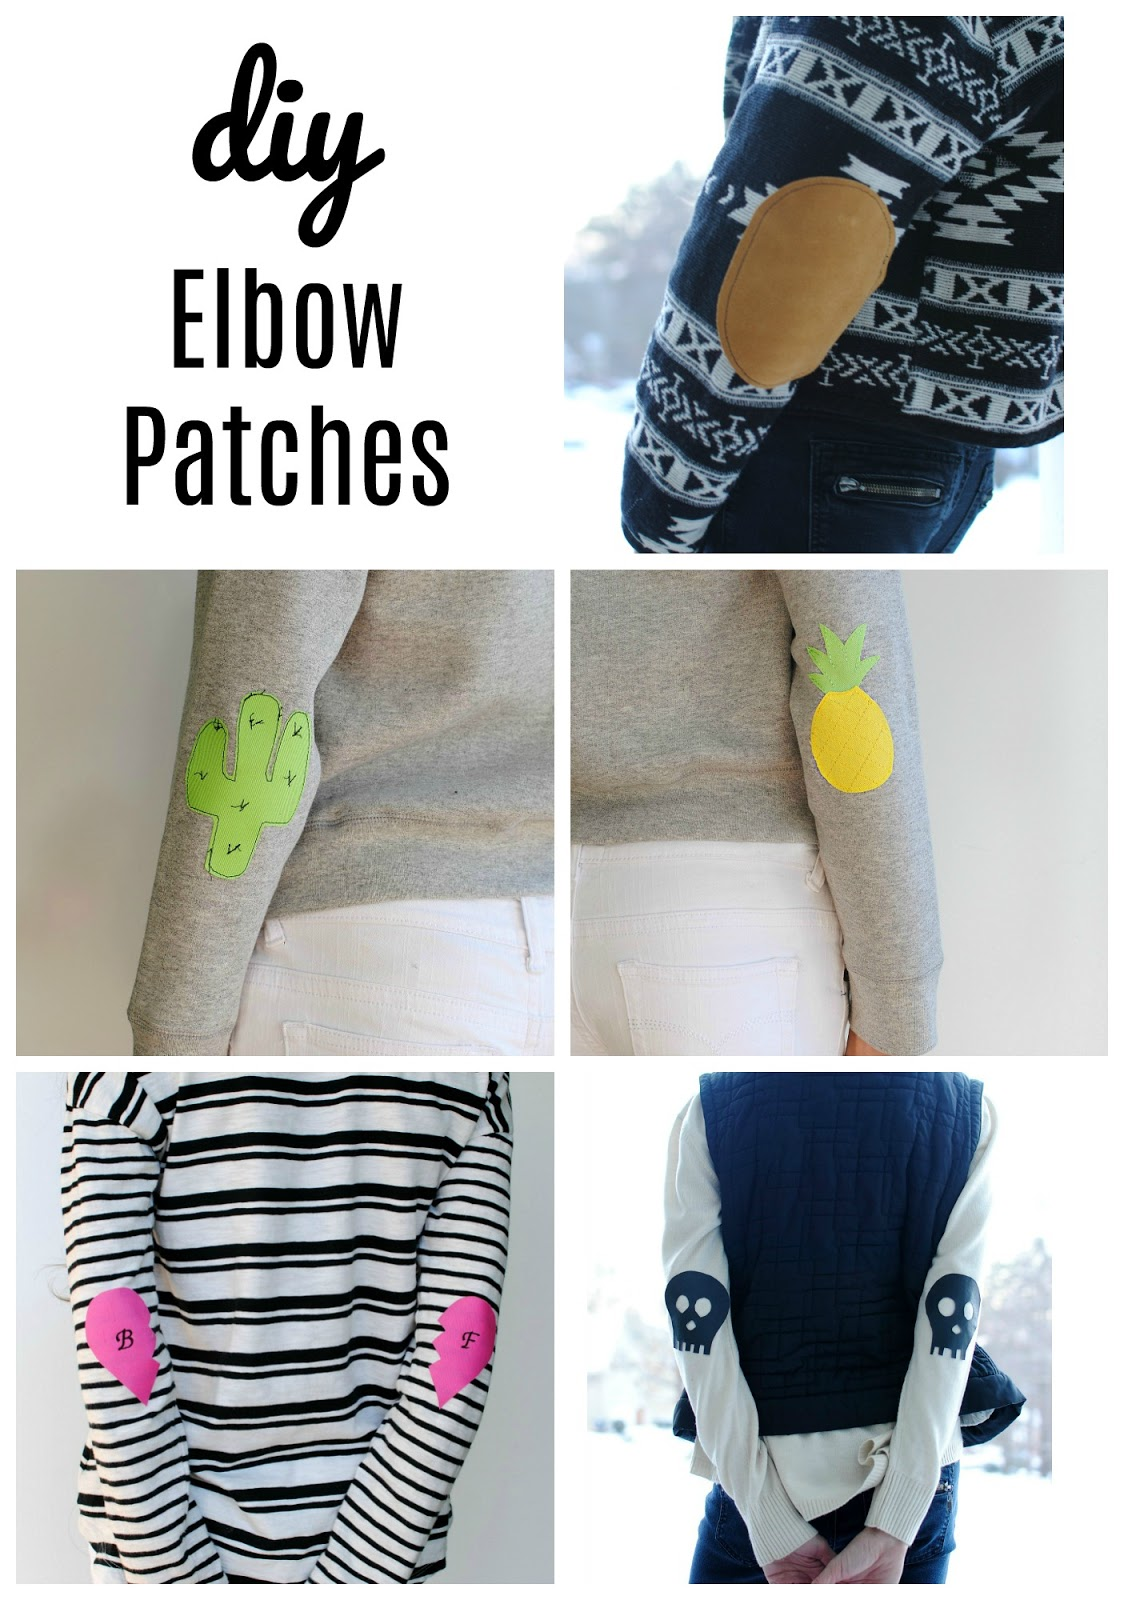 Trash to couture diy elbow patches diy elbow patches maxwellsz